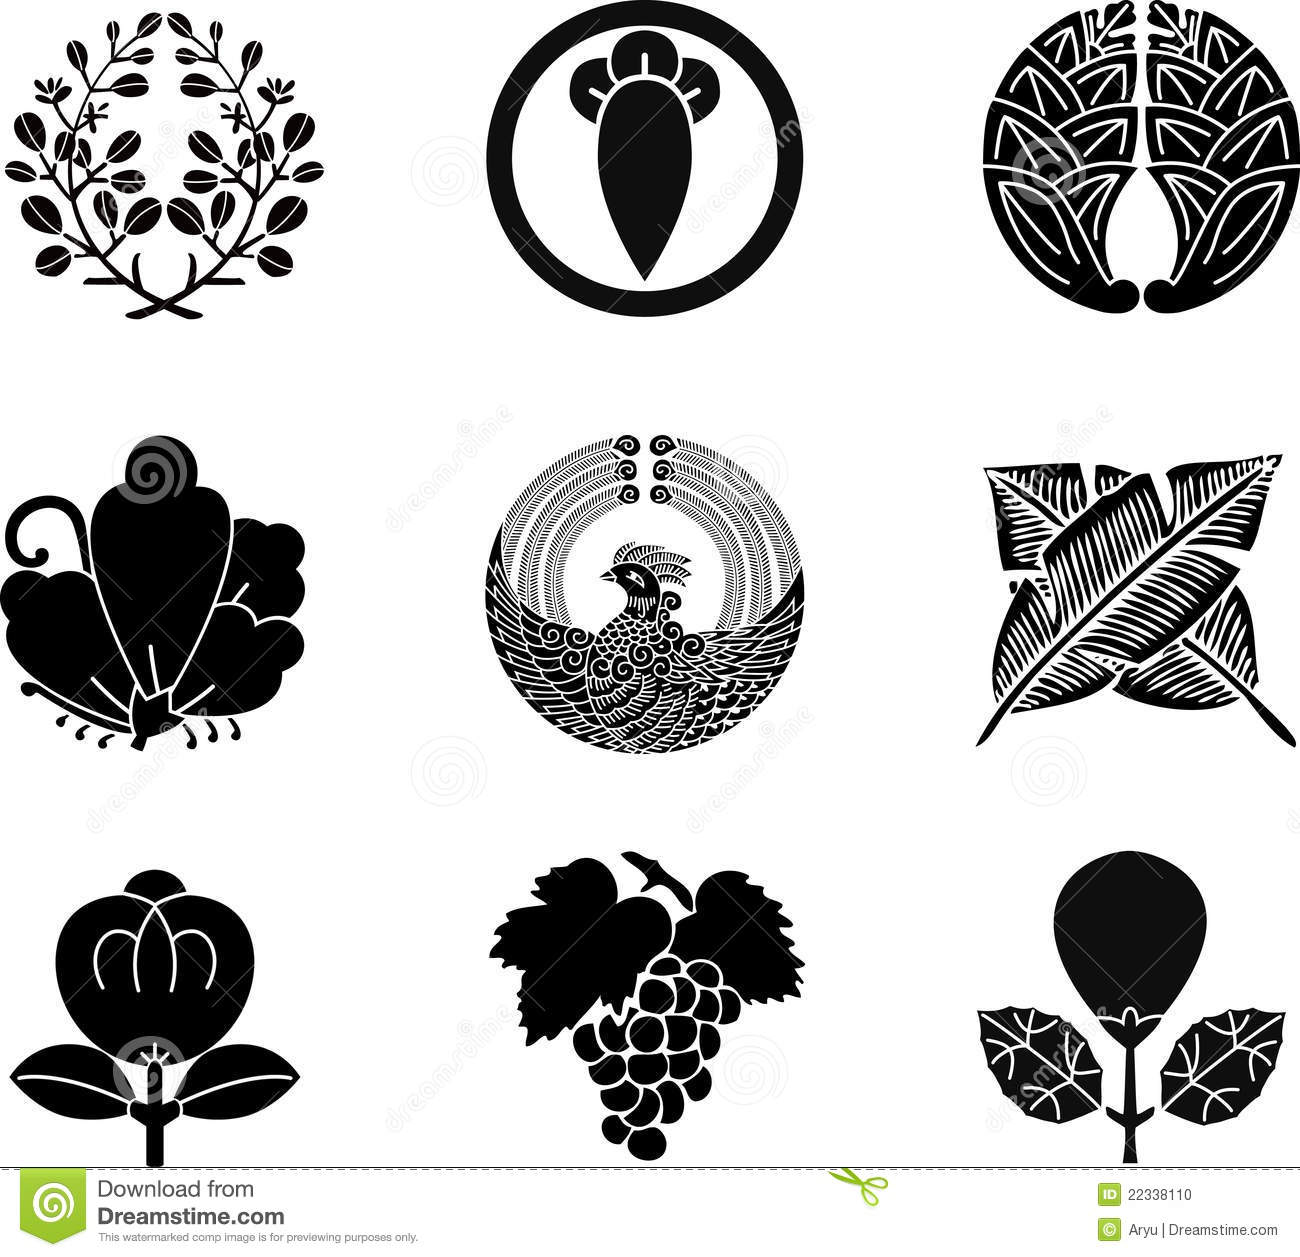 Japanese family crests stock vector image of nature 22338110 japanese family crests biocorpaavc